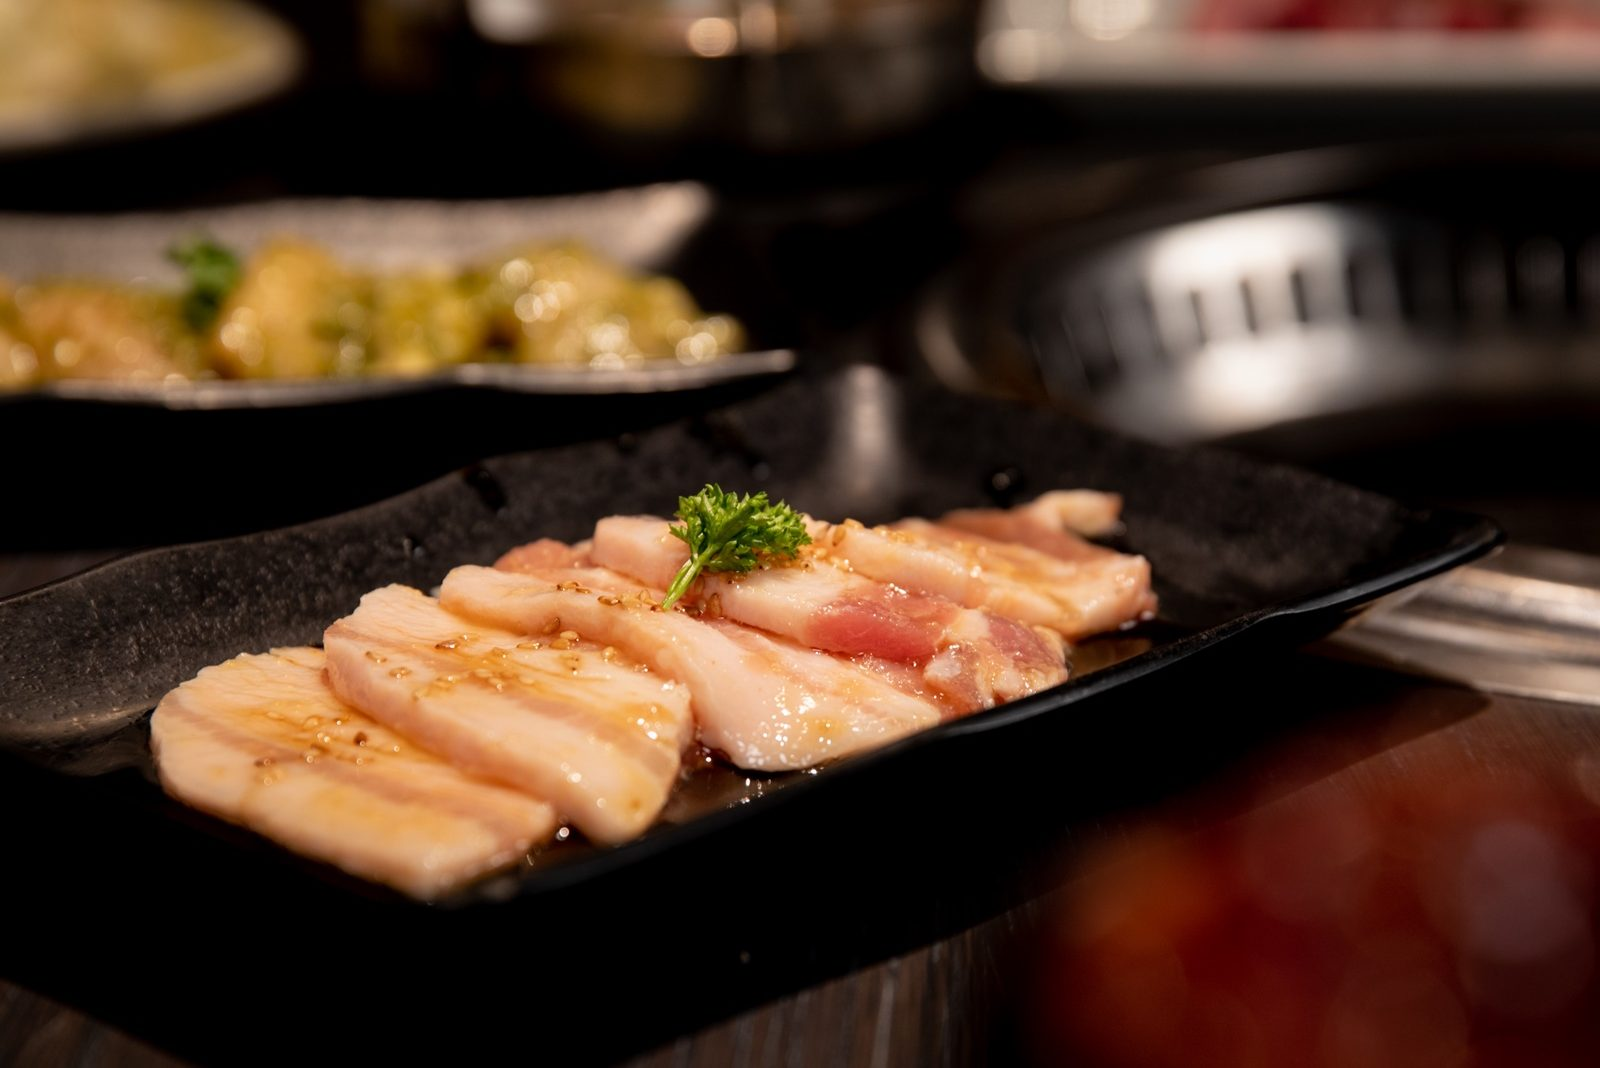 Pork belly ready to grill from Gyu-Kaku